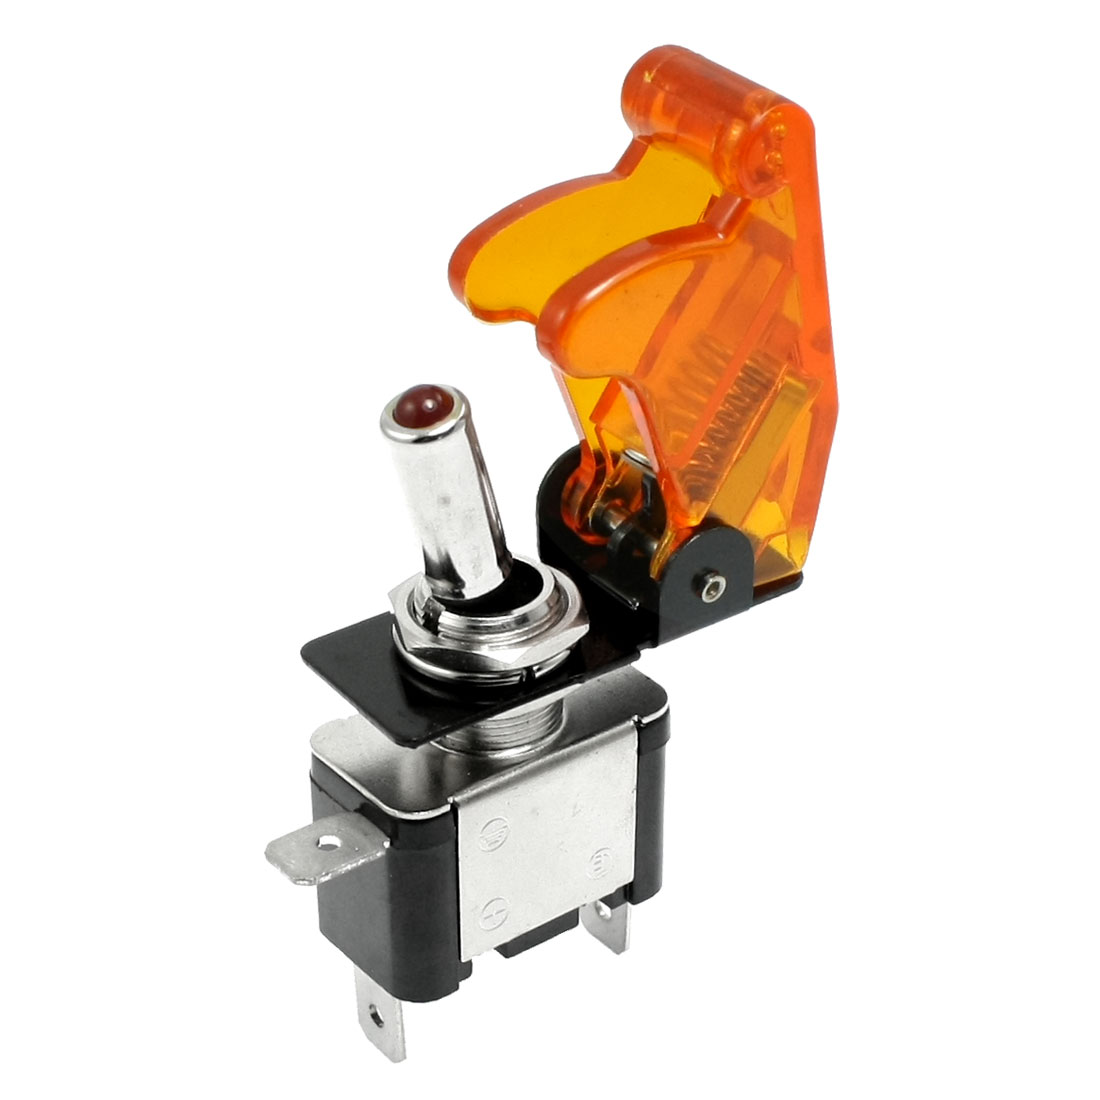 DC 12V 20A On Off Racing Car Illuminated Toggle Switch + Orange Cover